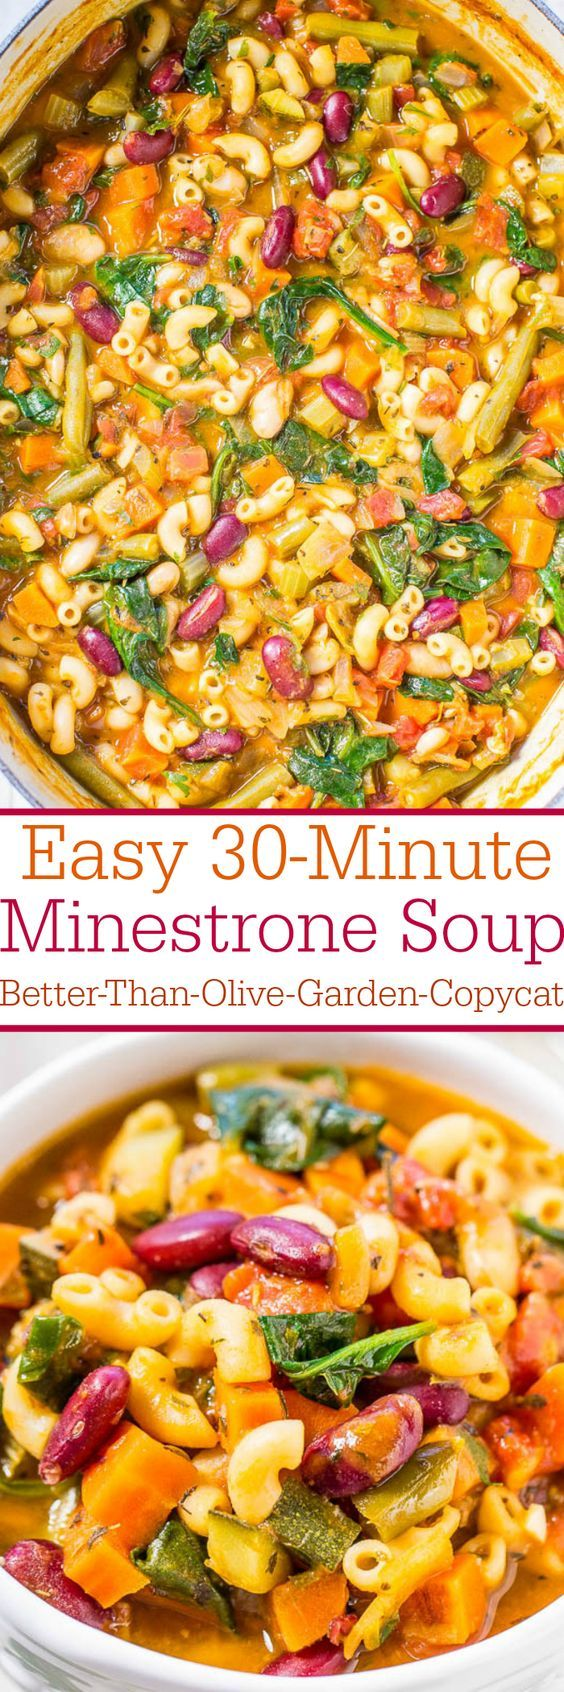 17 best ideas about olive garden minestrone soup on Low calorie options at olive garden